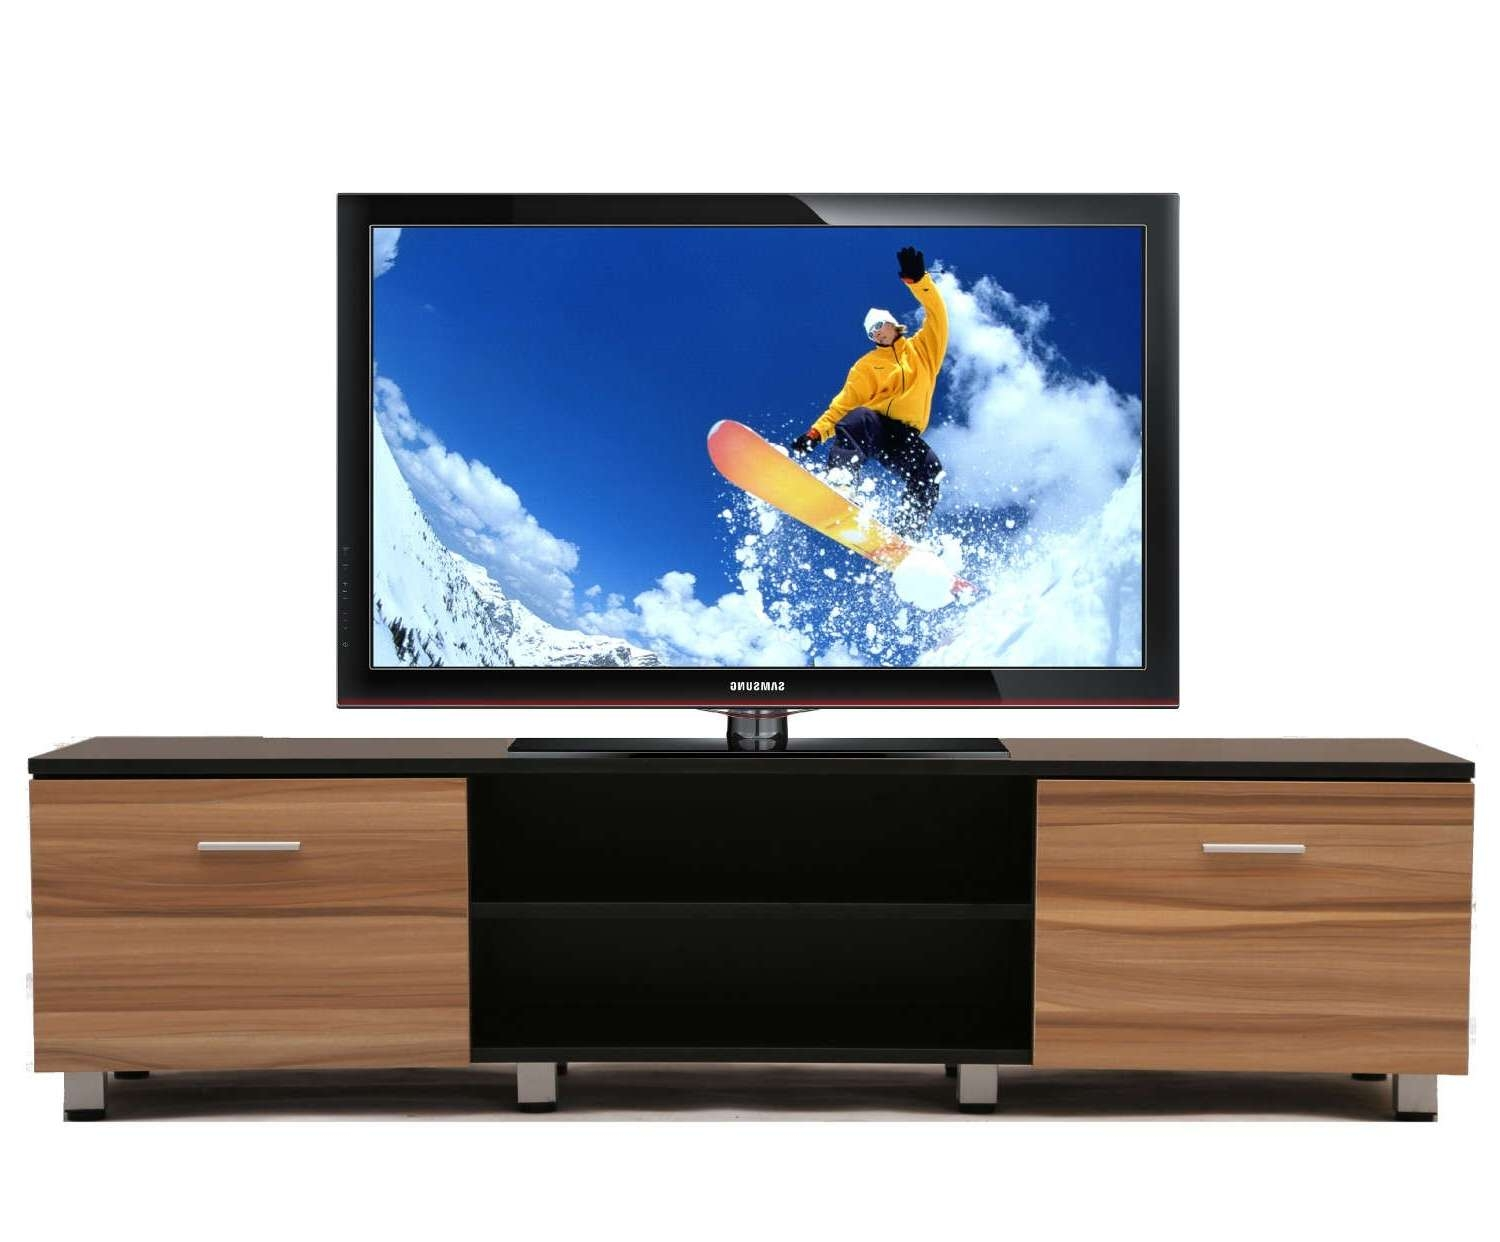 Wooden Samba Tv Unit Stand Cabinet | Furniturebox Within Wooden Tv Cabinets (View 19 of 20)